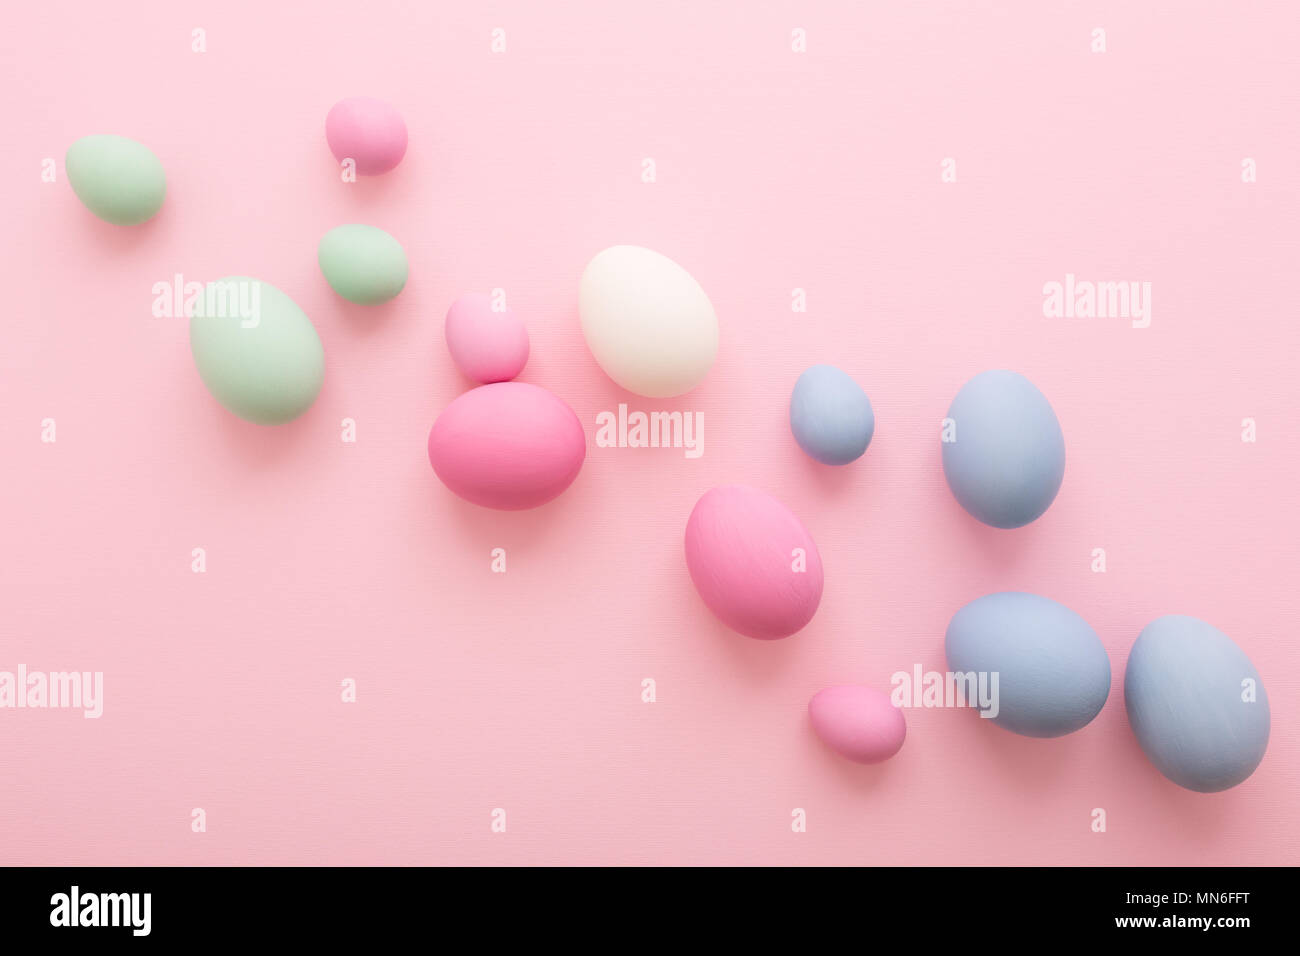 Spreaded colored Easter Eggs on pink  background. Happy Holiday greeting card. Flat lay, minimal style. Pastel colors - Stock Image